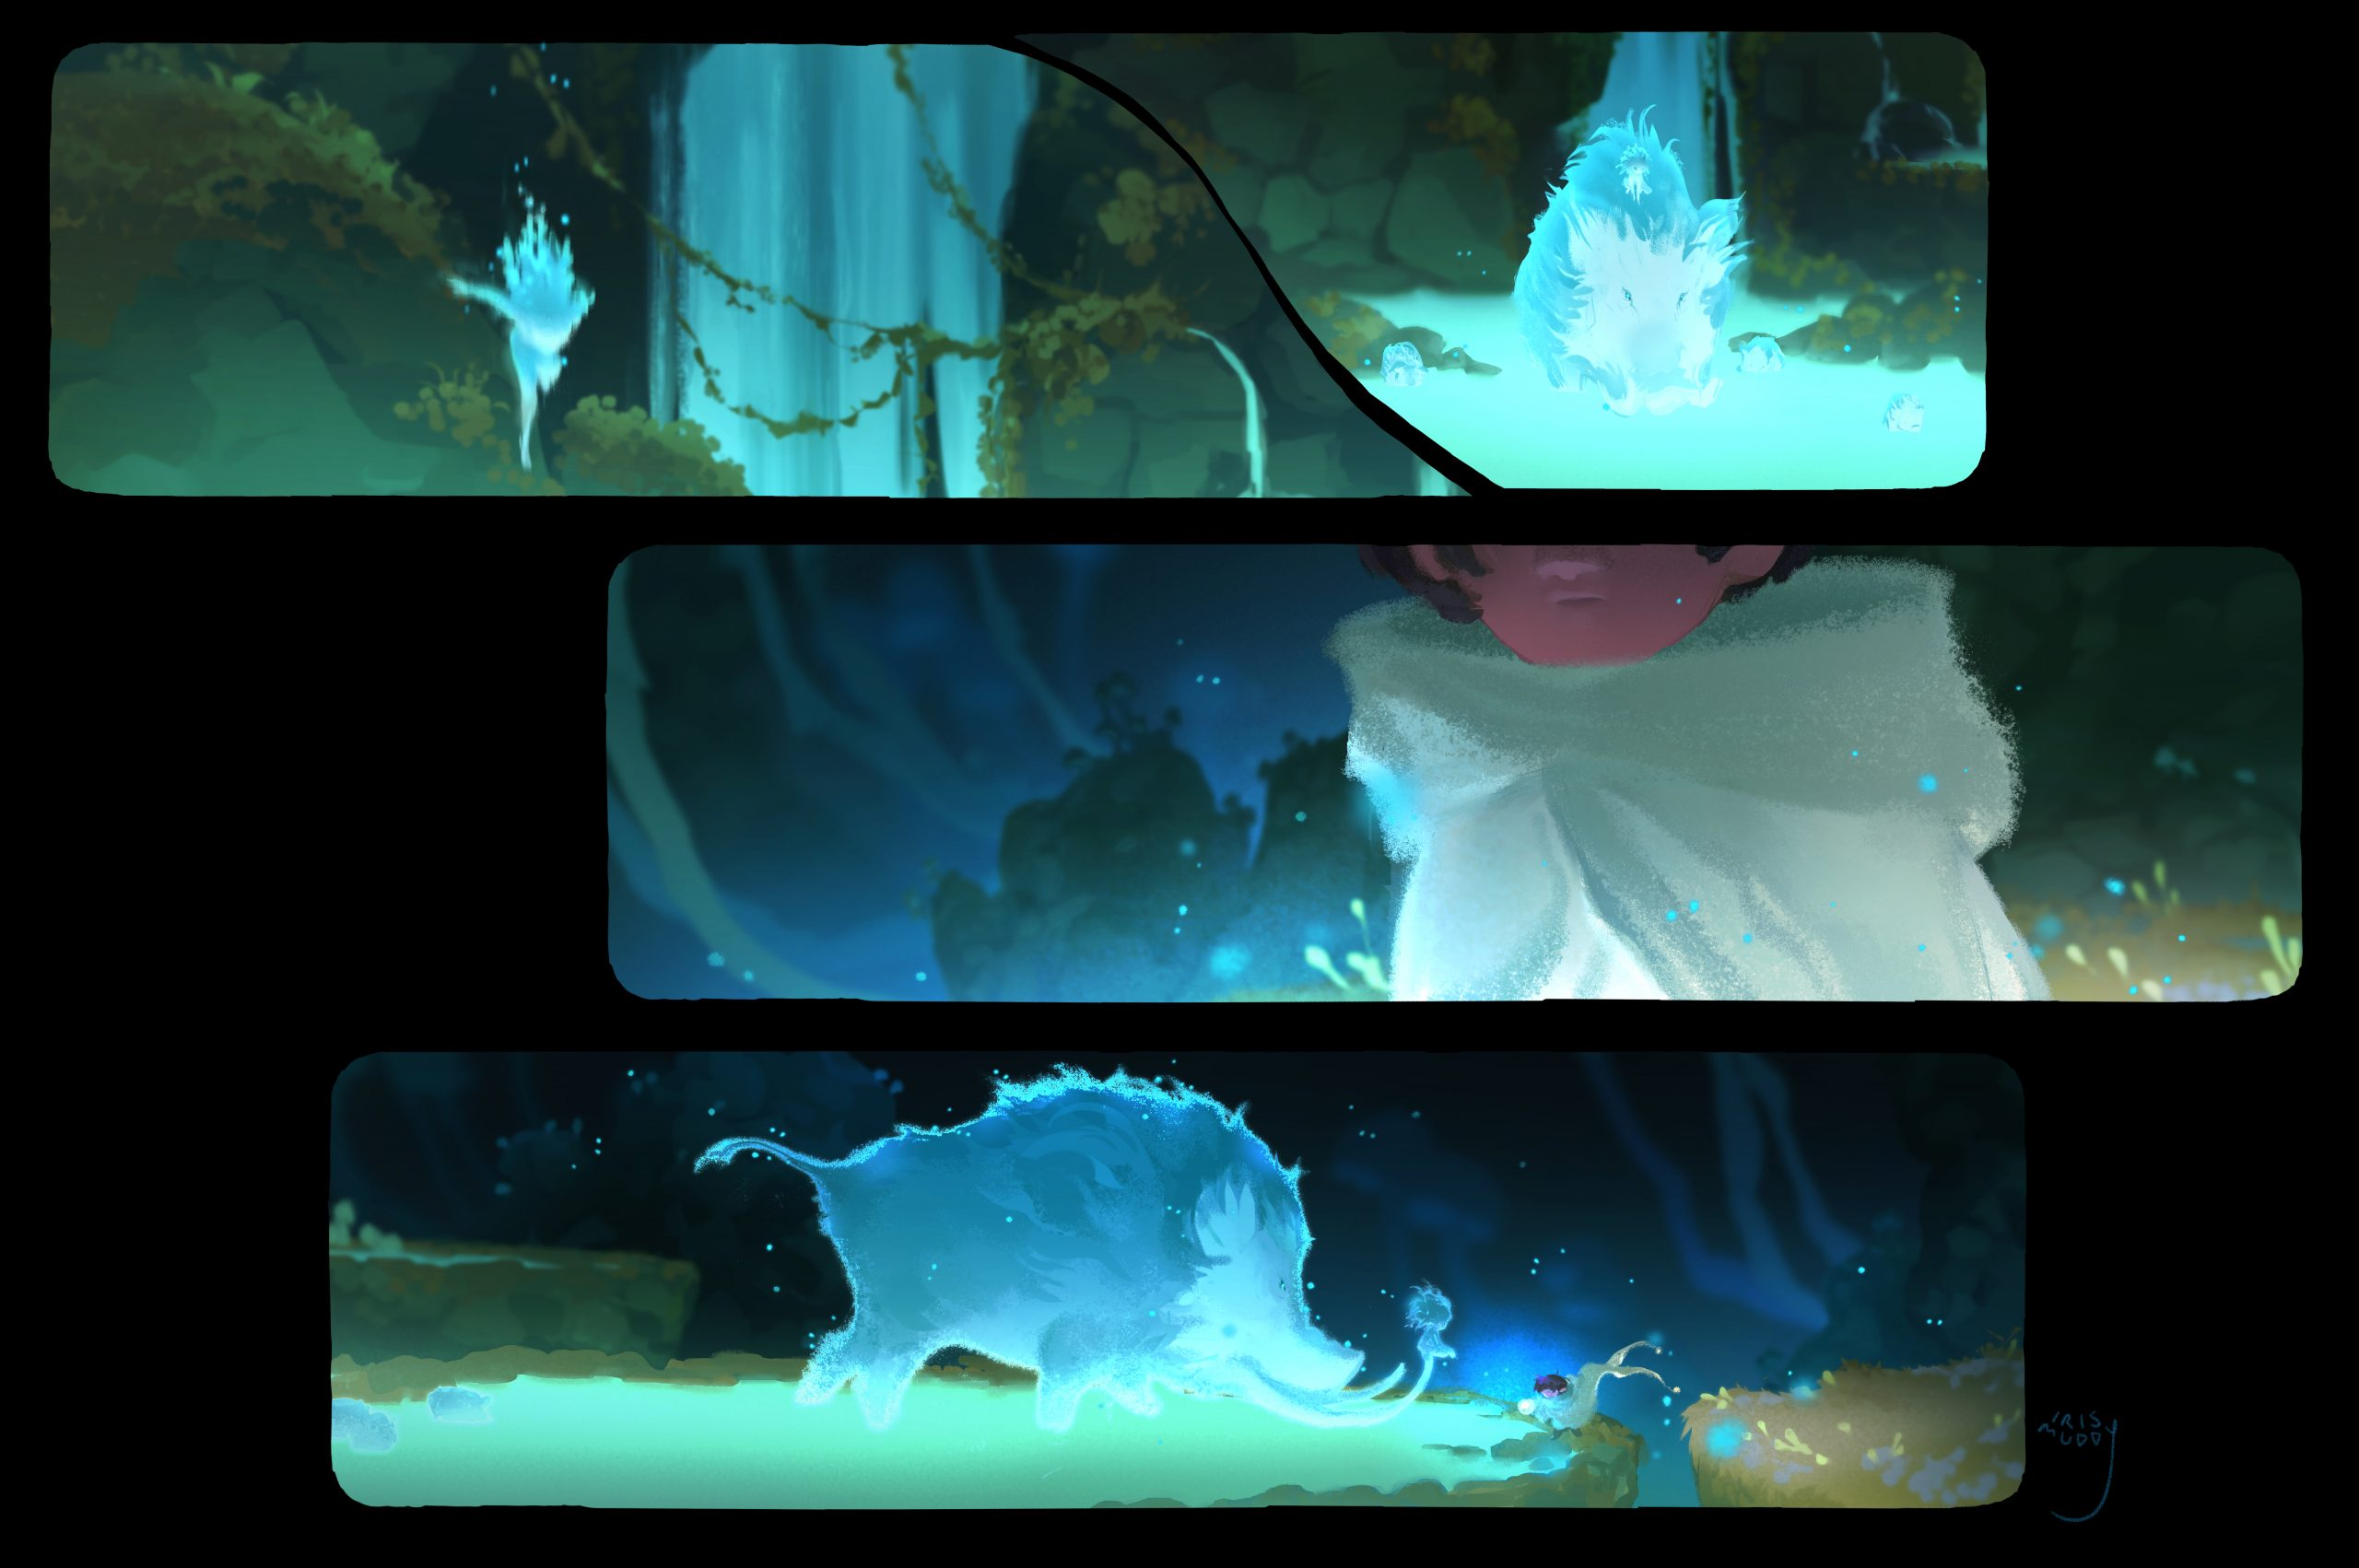 Three panels from Iris's painting, showing a blue light creature approach a glowing forest boar and then young boy